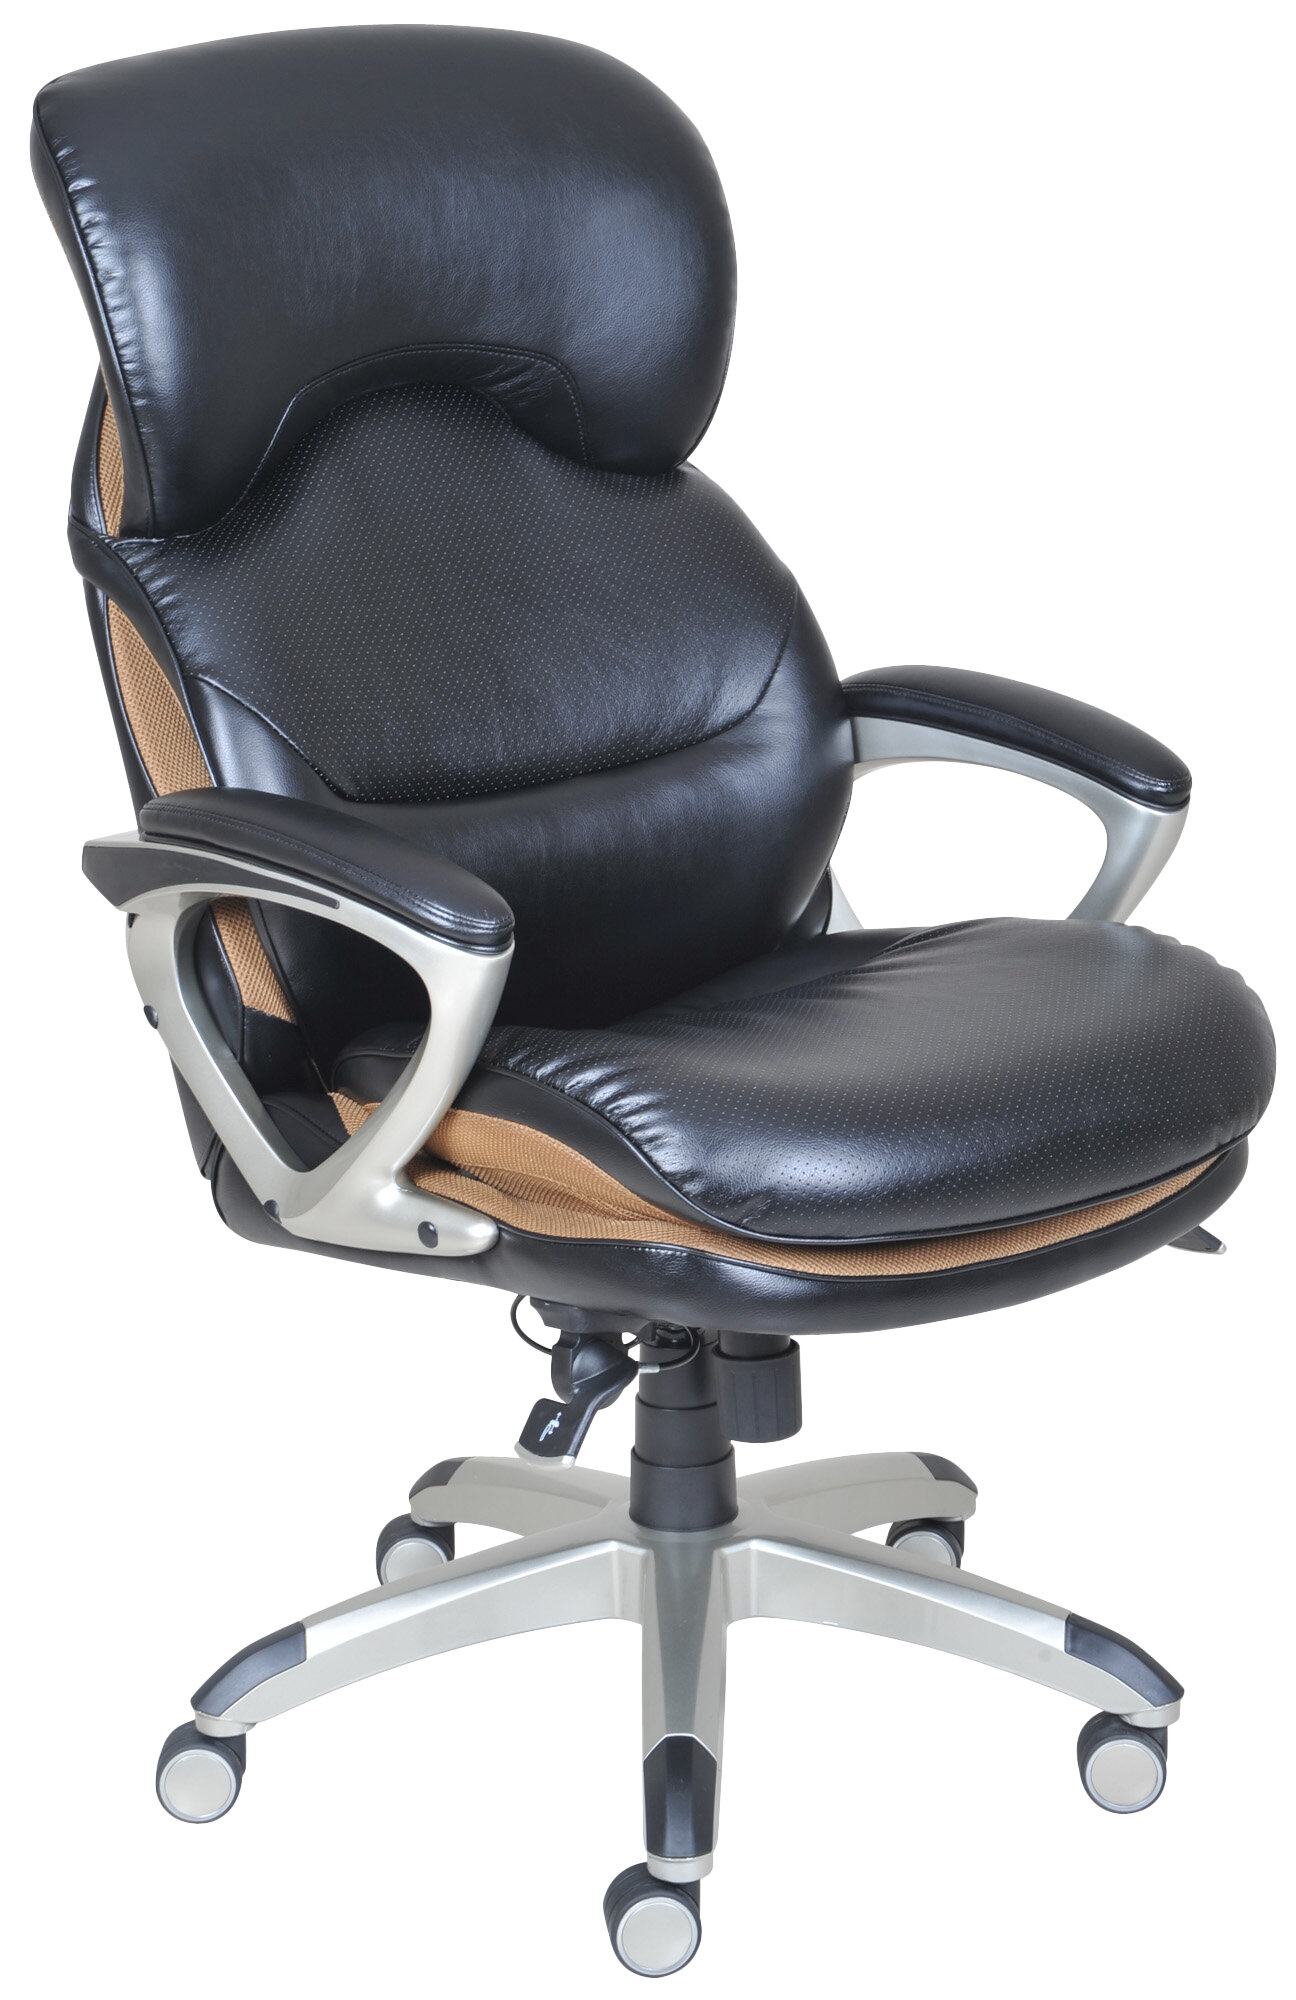 Serta At Home High Back Leather Executive Office Chair With Flexible AIR EBay